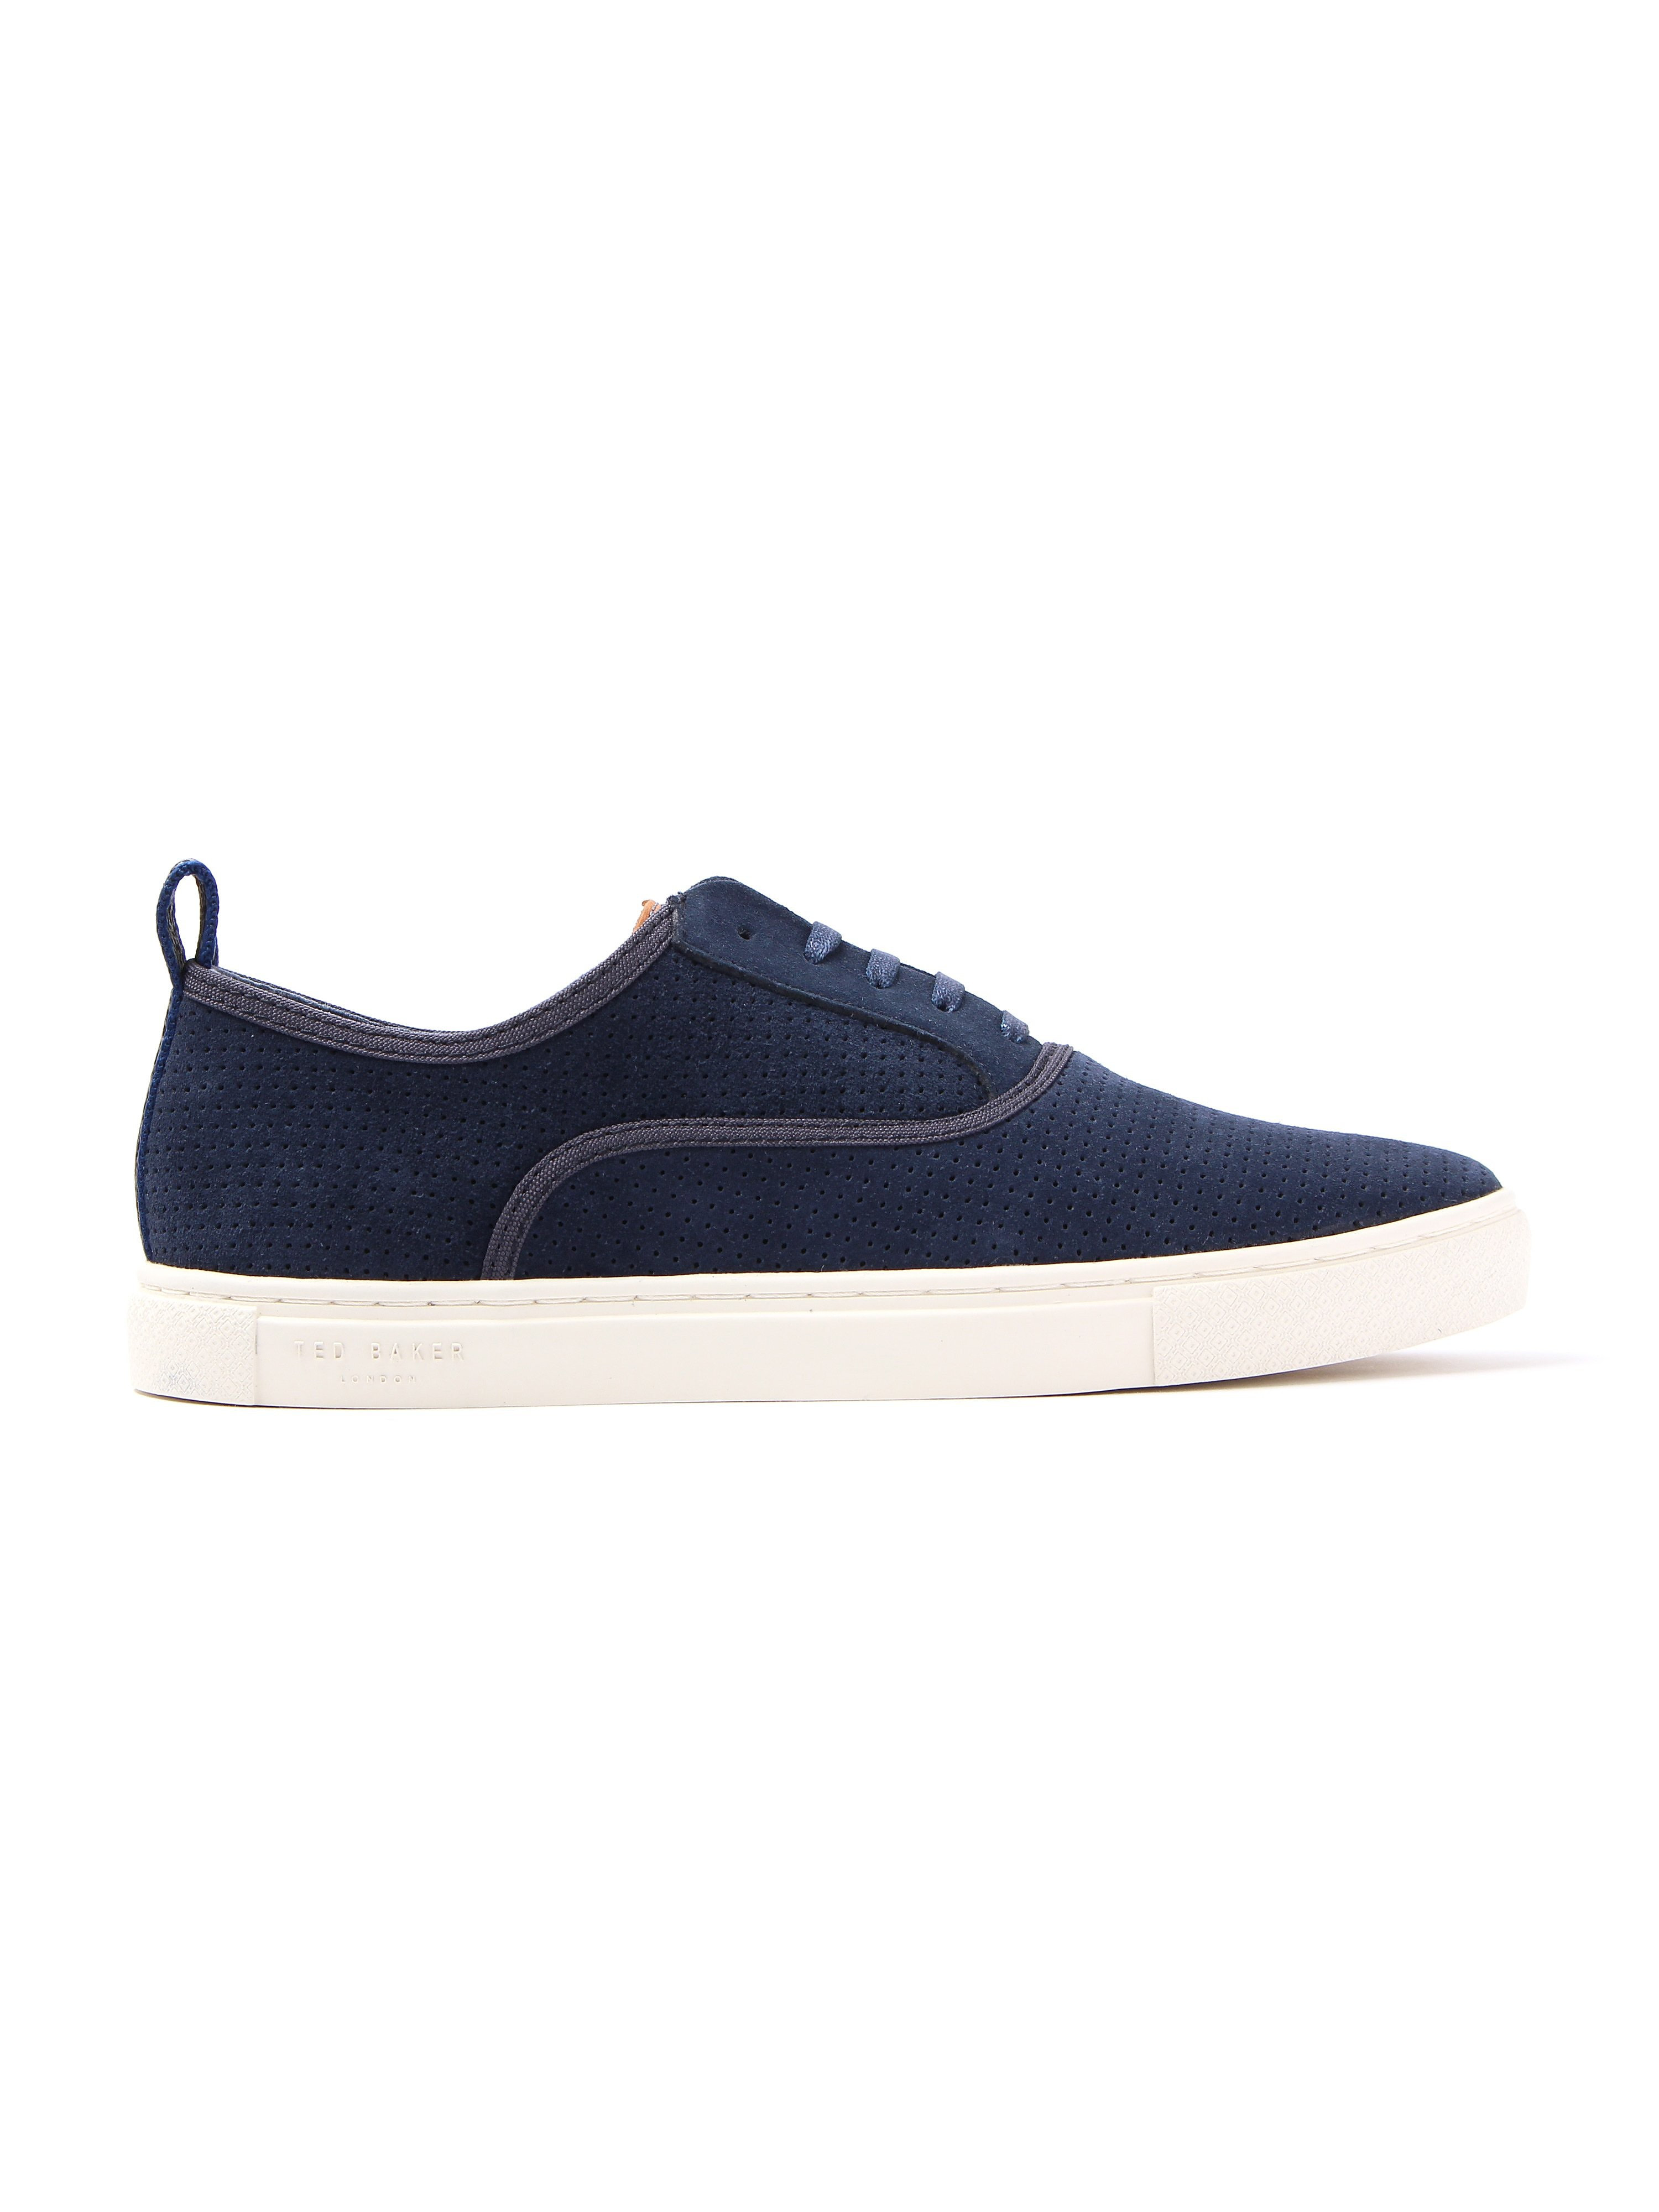 Ted Baker Men's Odonel Perforated Suede Trainers - Dark Blue